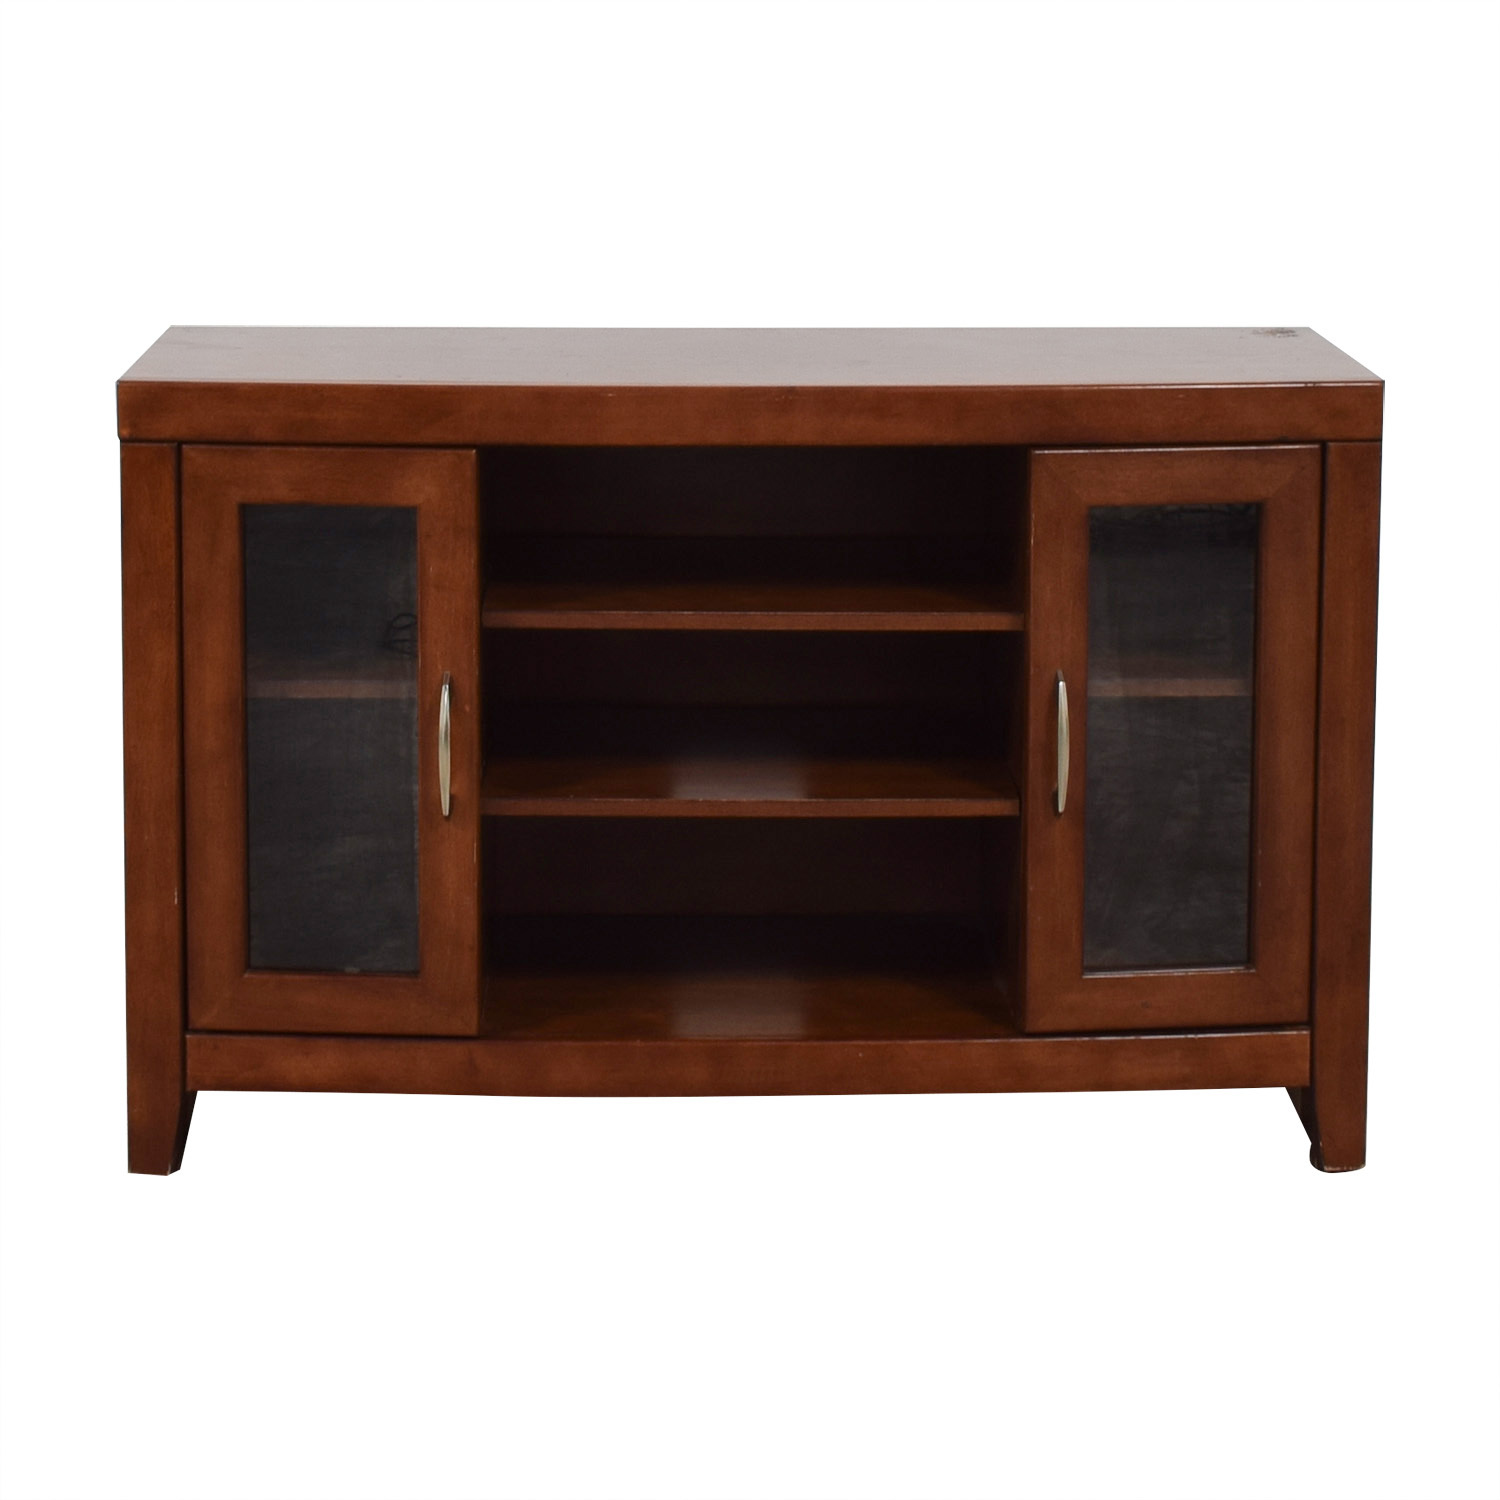 Raymour & Flanigan Raymour & Flanigan Del Mar Cherry TV Stand discount